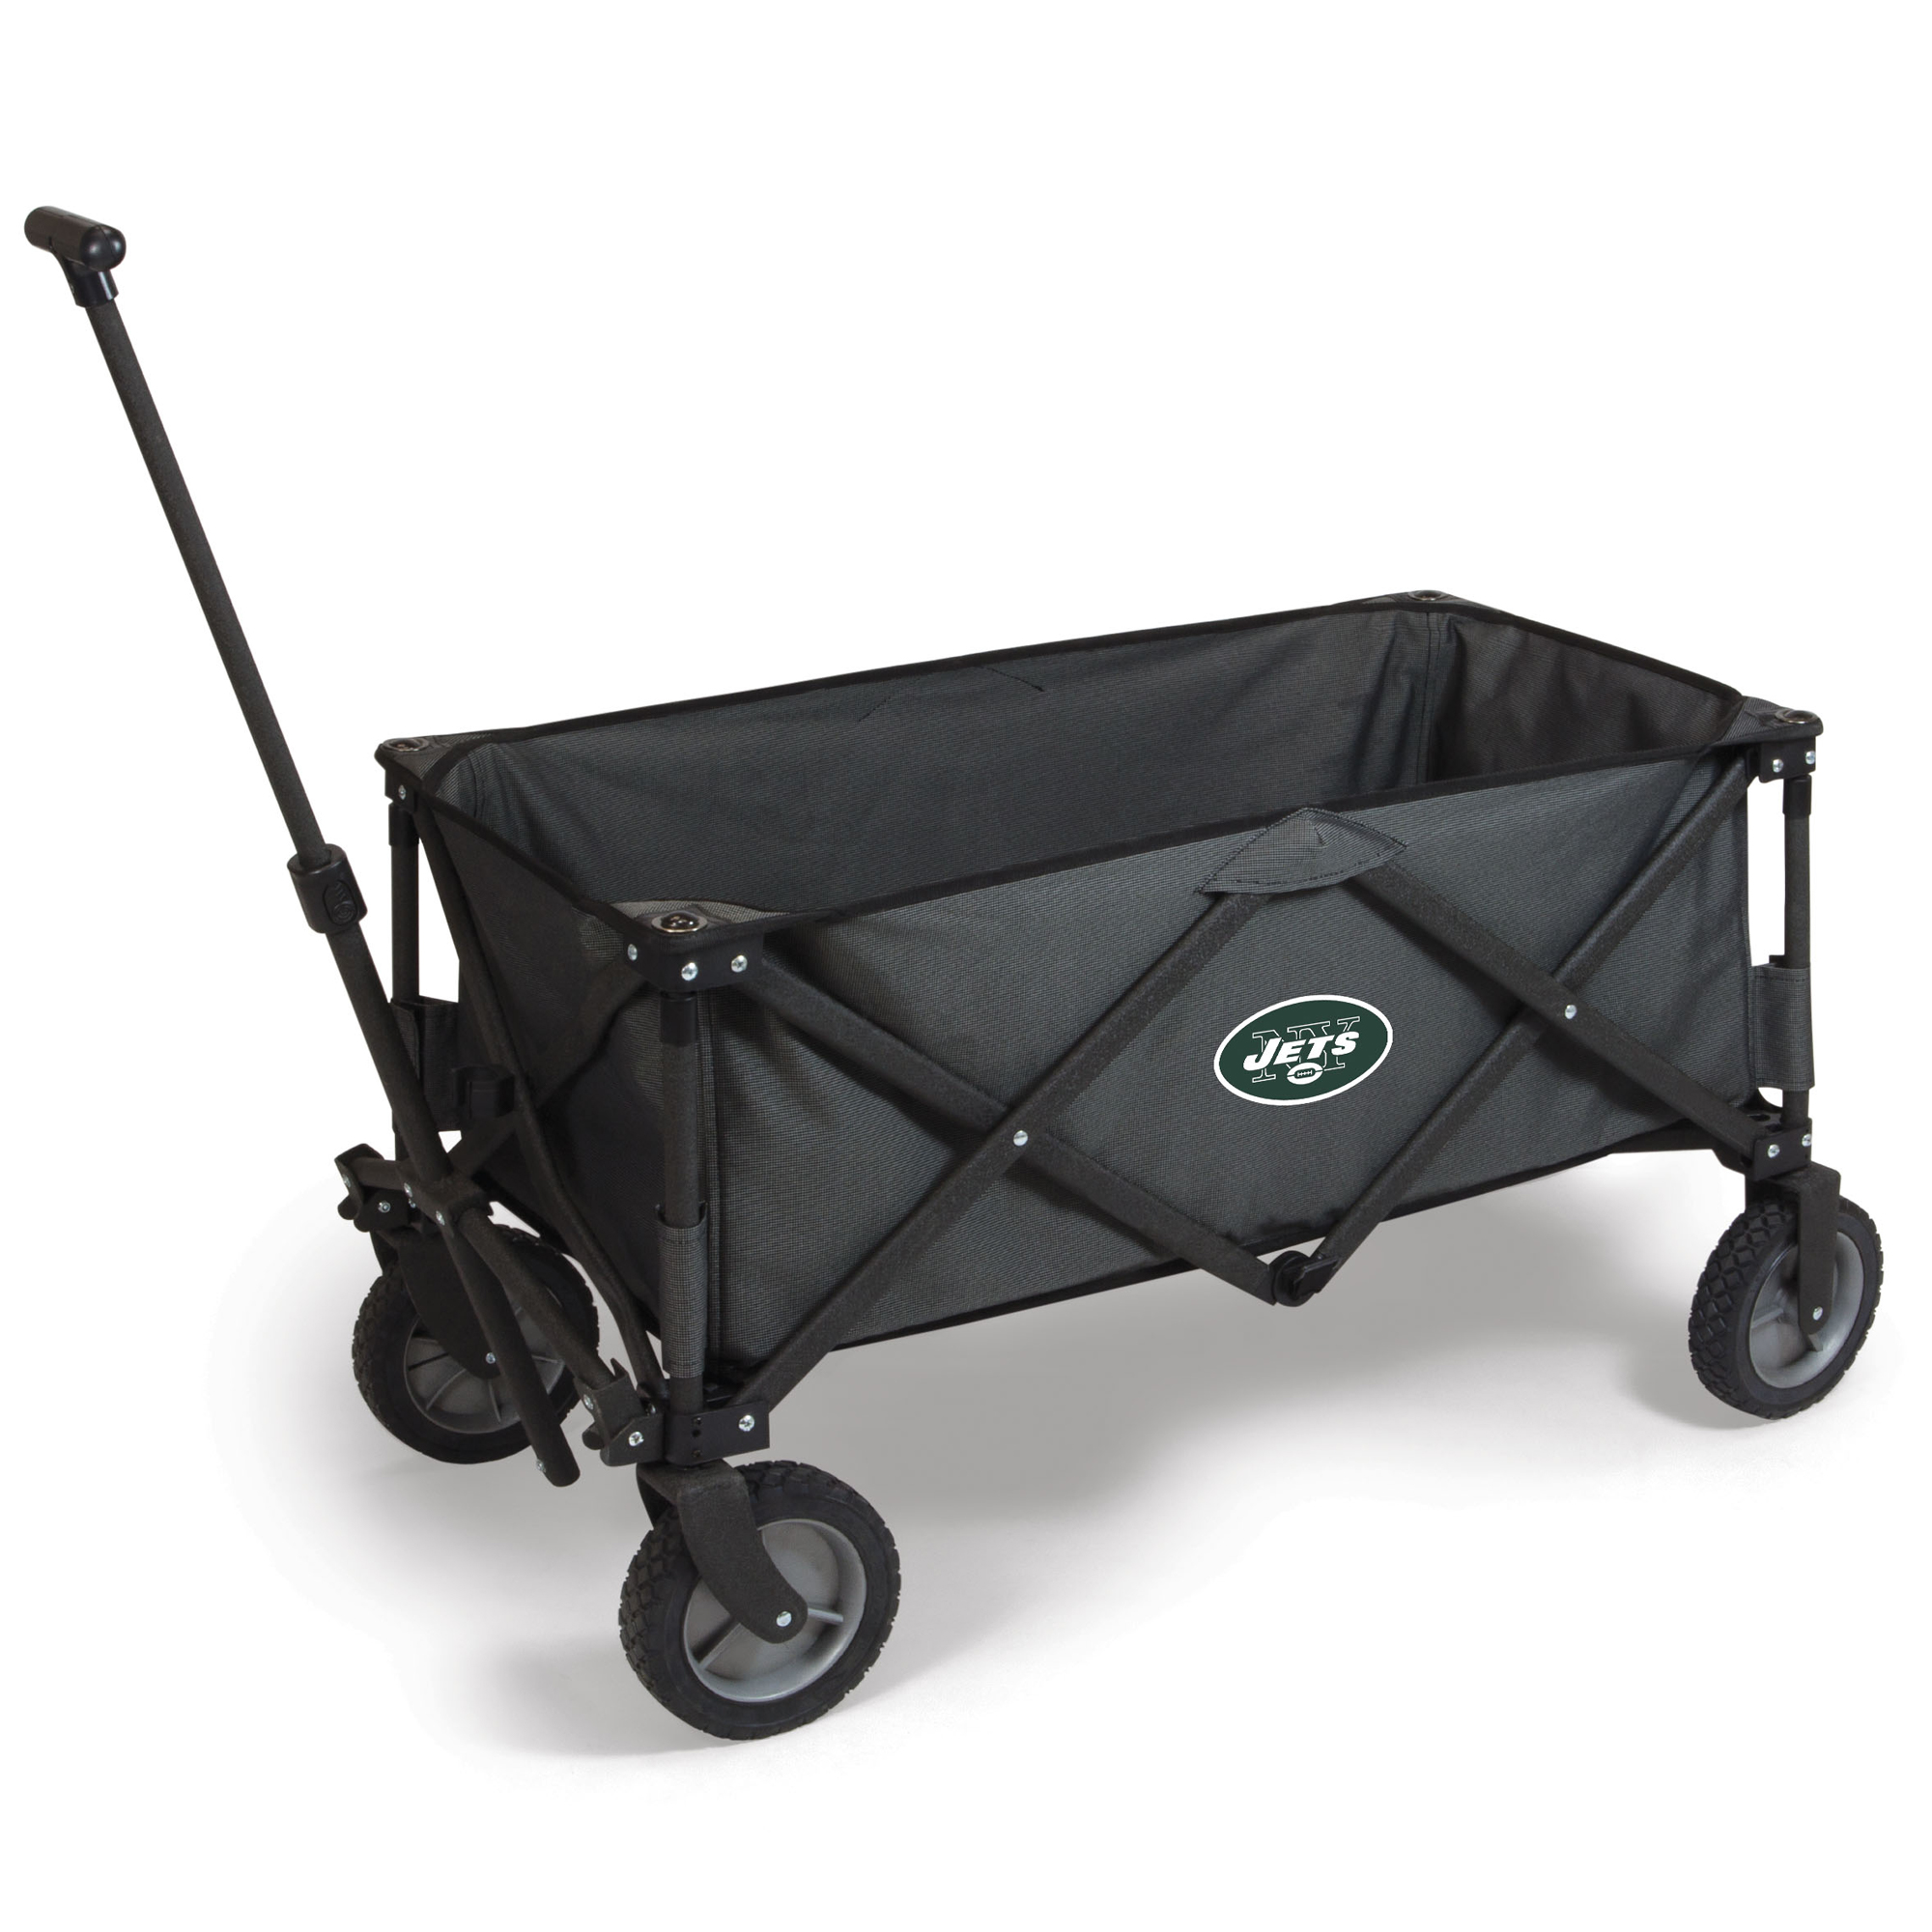 Los Angeles Rams Adventure Wagon Folding Utility Tailgate Wagon No Size by Picnic Time